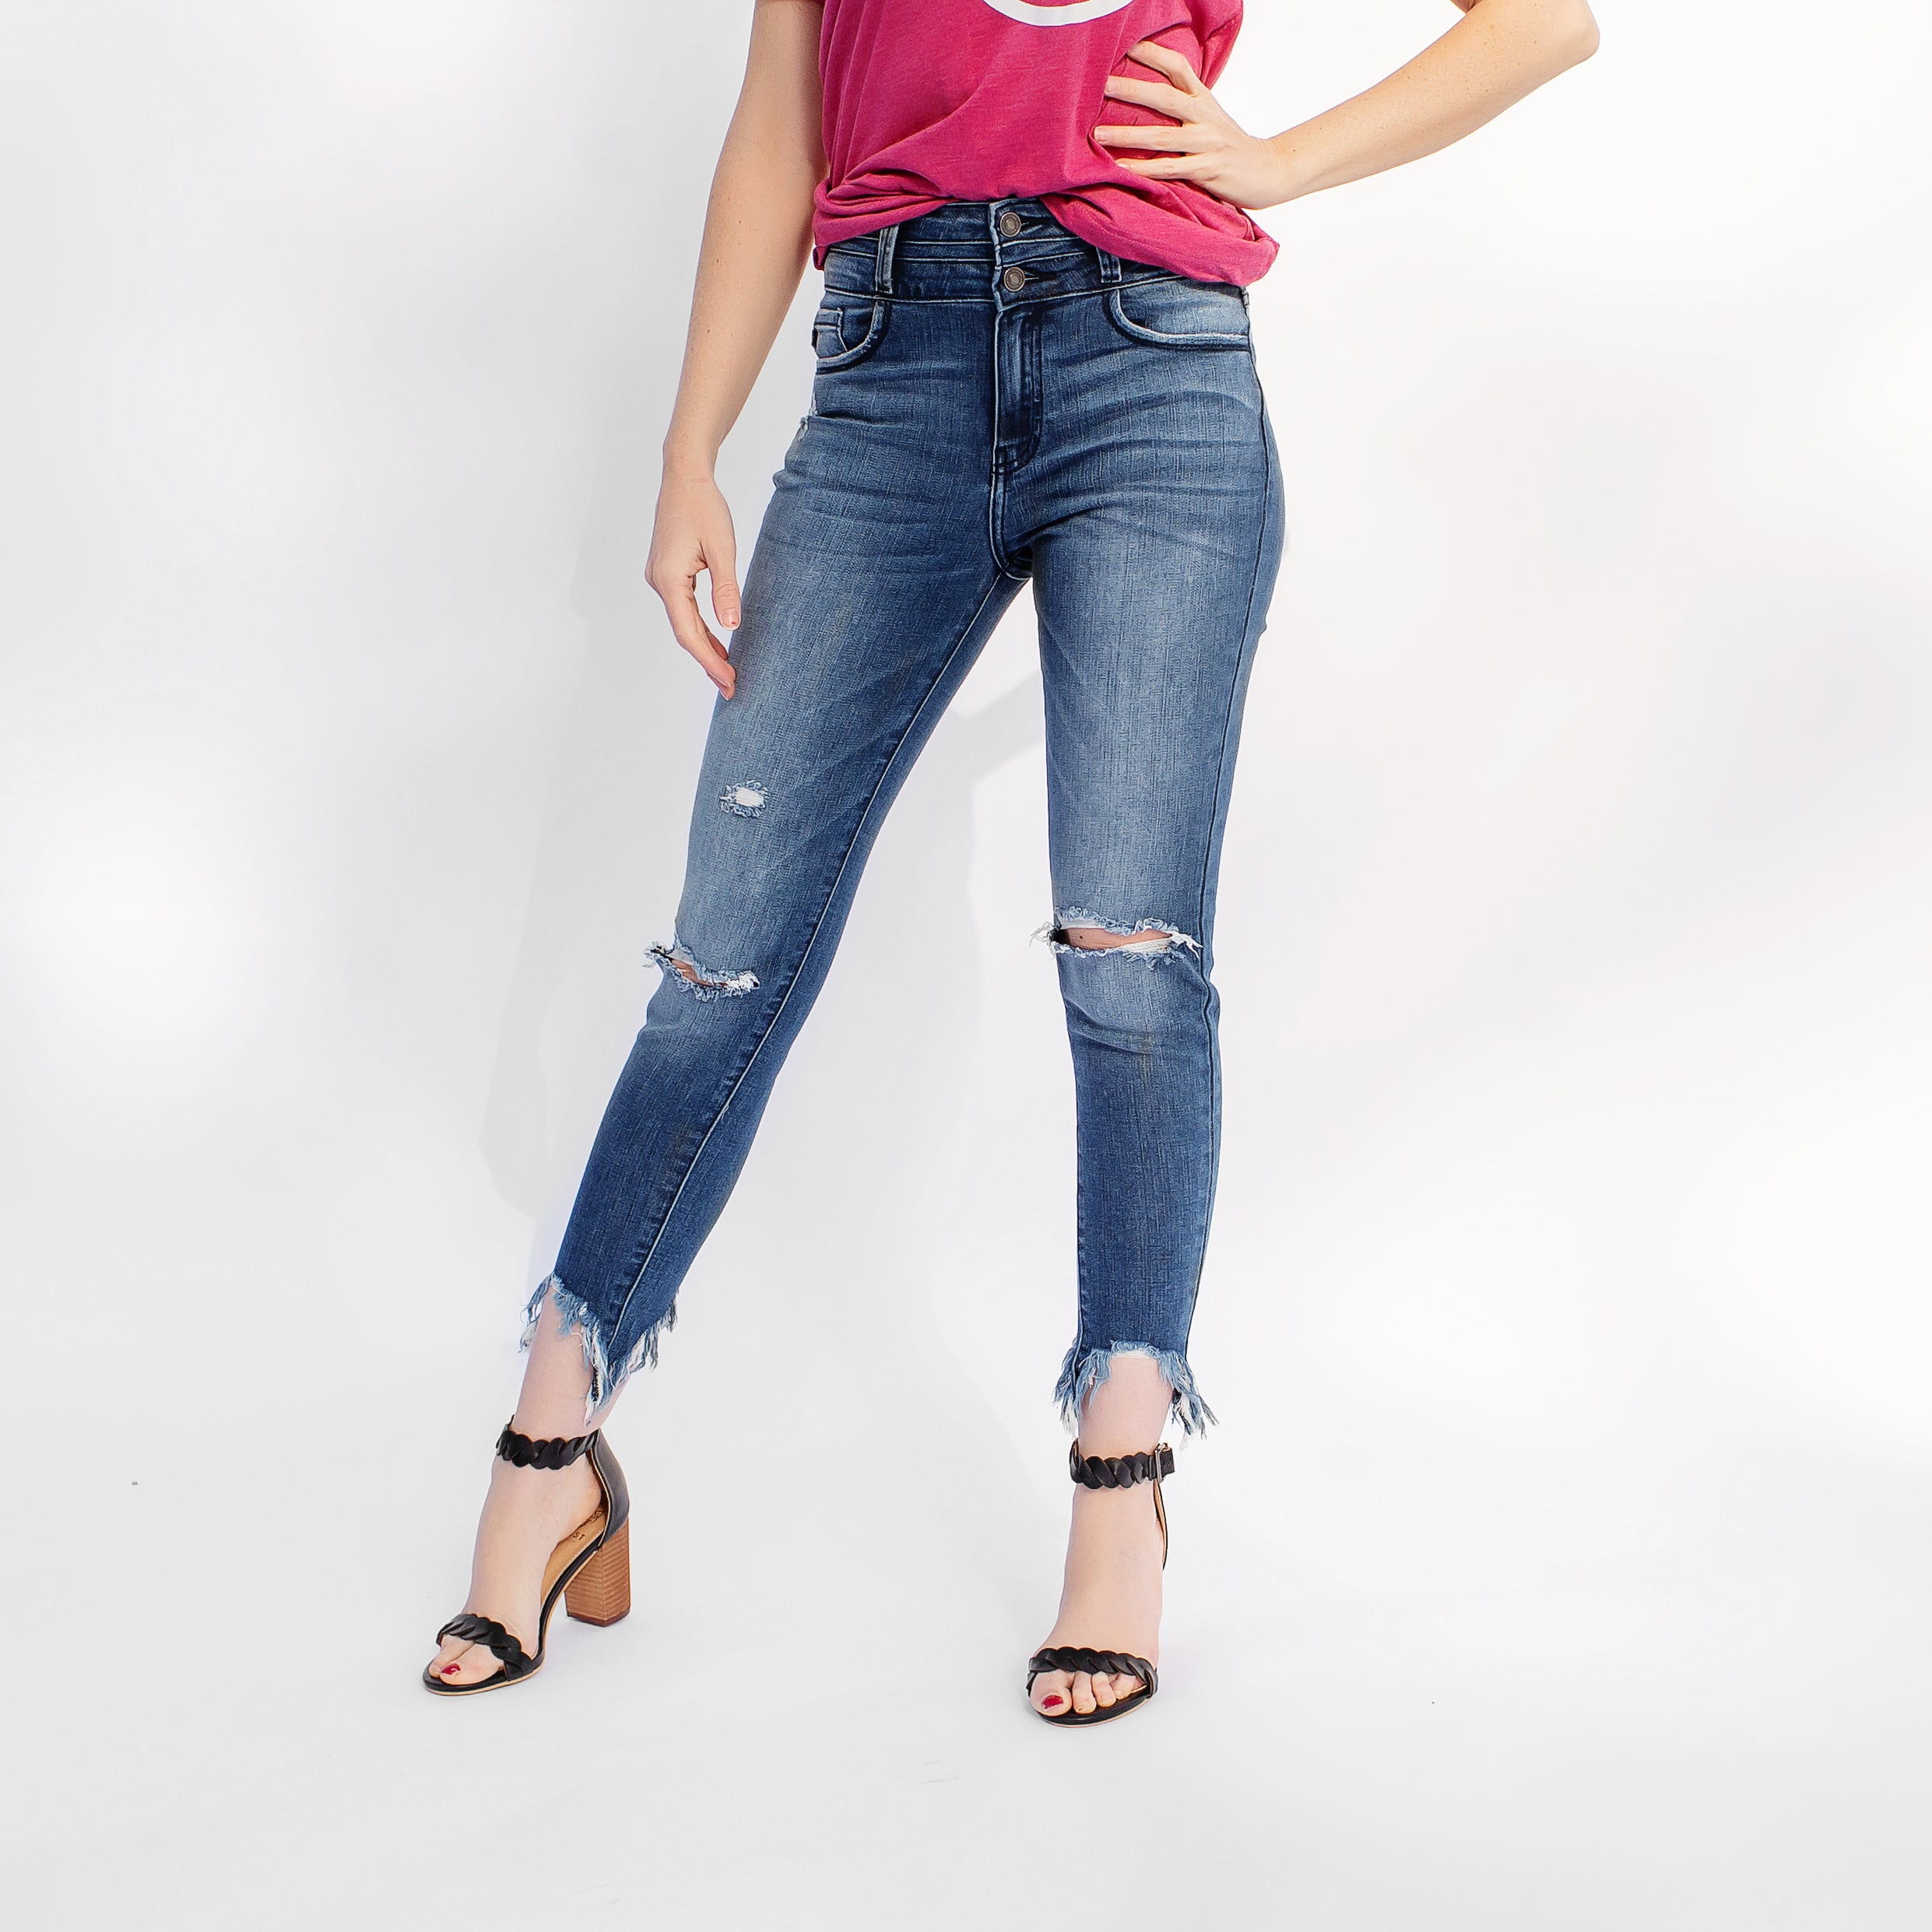 Kancan Gemma High Rise Ankle Skinny Jeans *Final Sale*